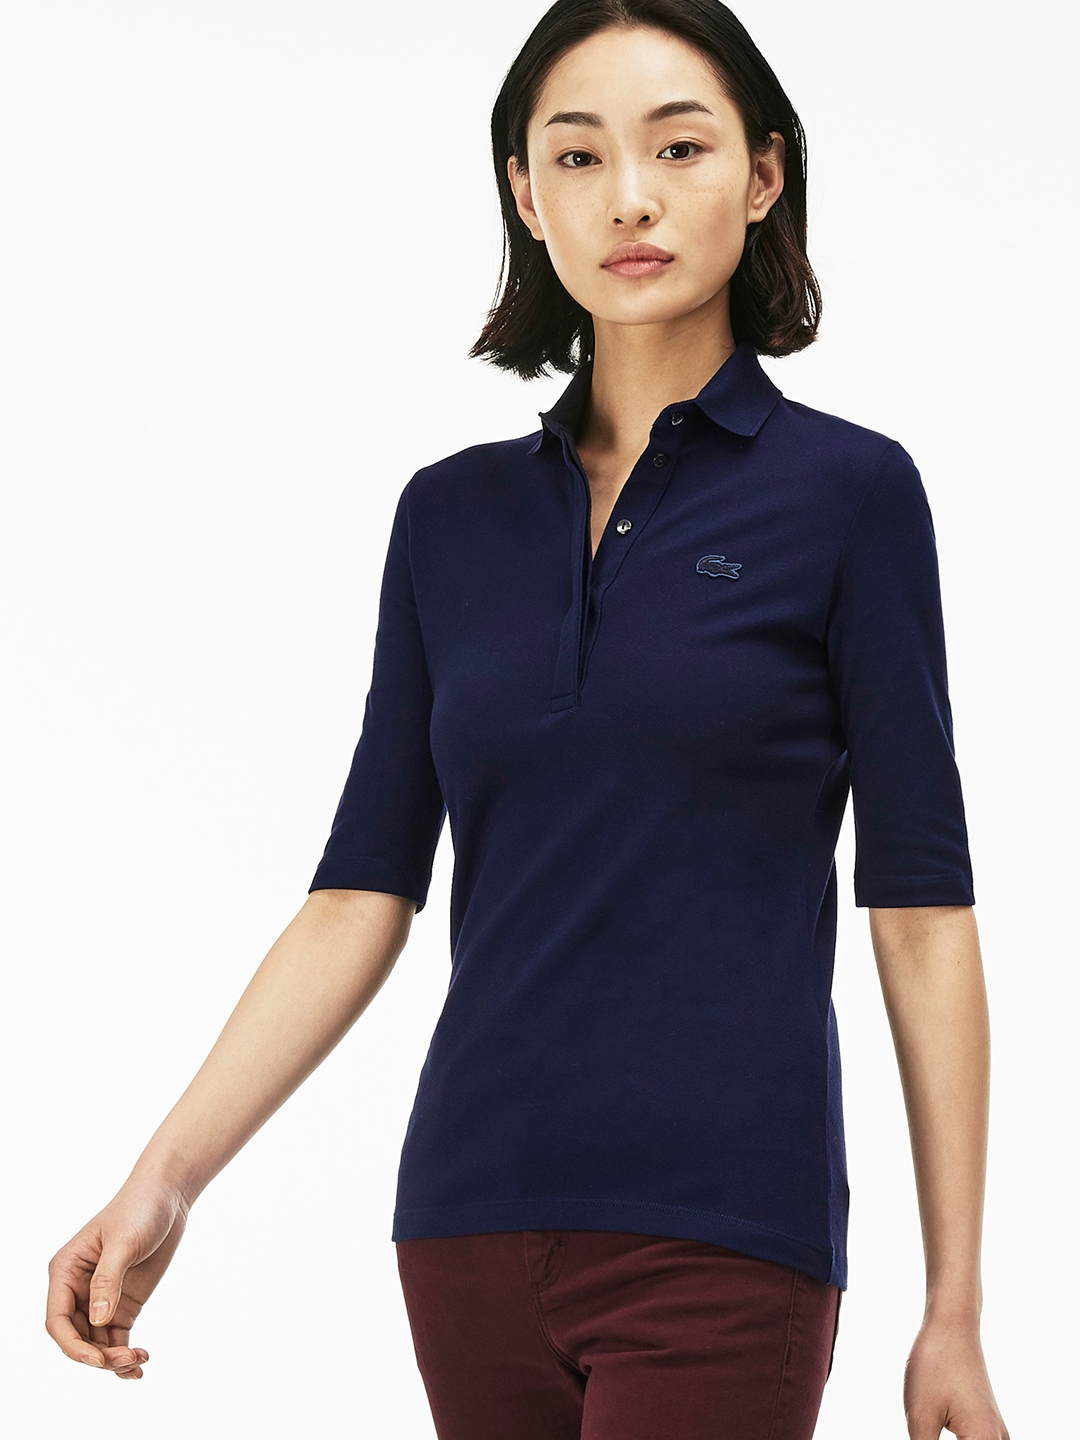 b93fa412eae Lacoste Women Navy Blue Solid Polo Collar T-shirt. This product is already  at its best price